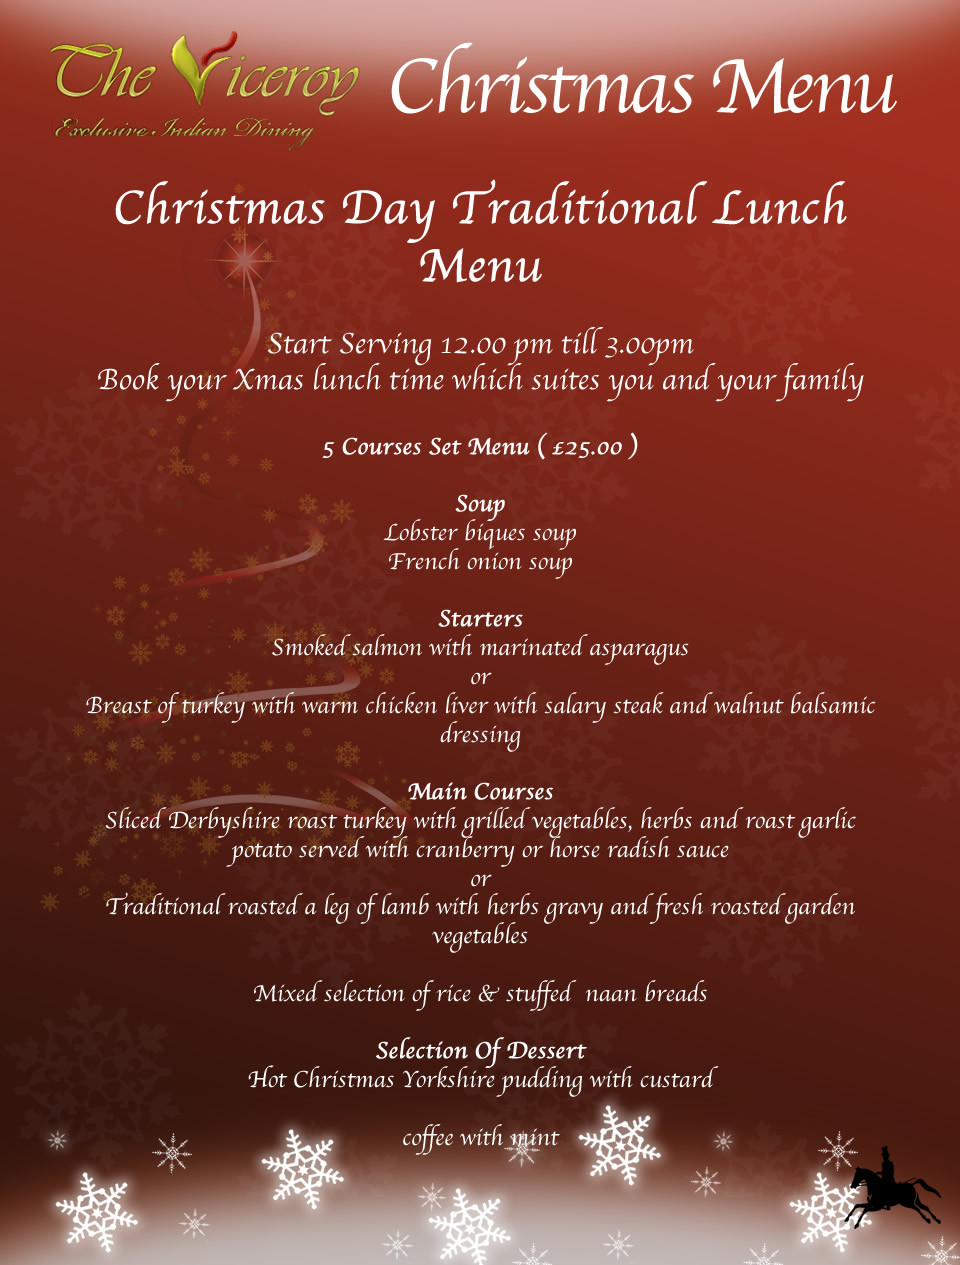 Traditional Christmas Dinner Menu  The resource cannot be found